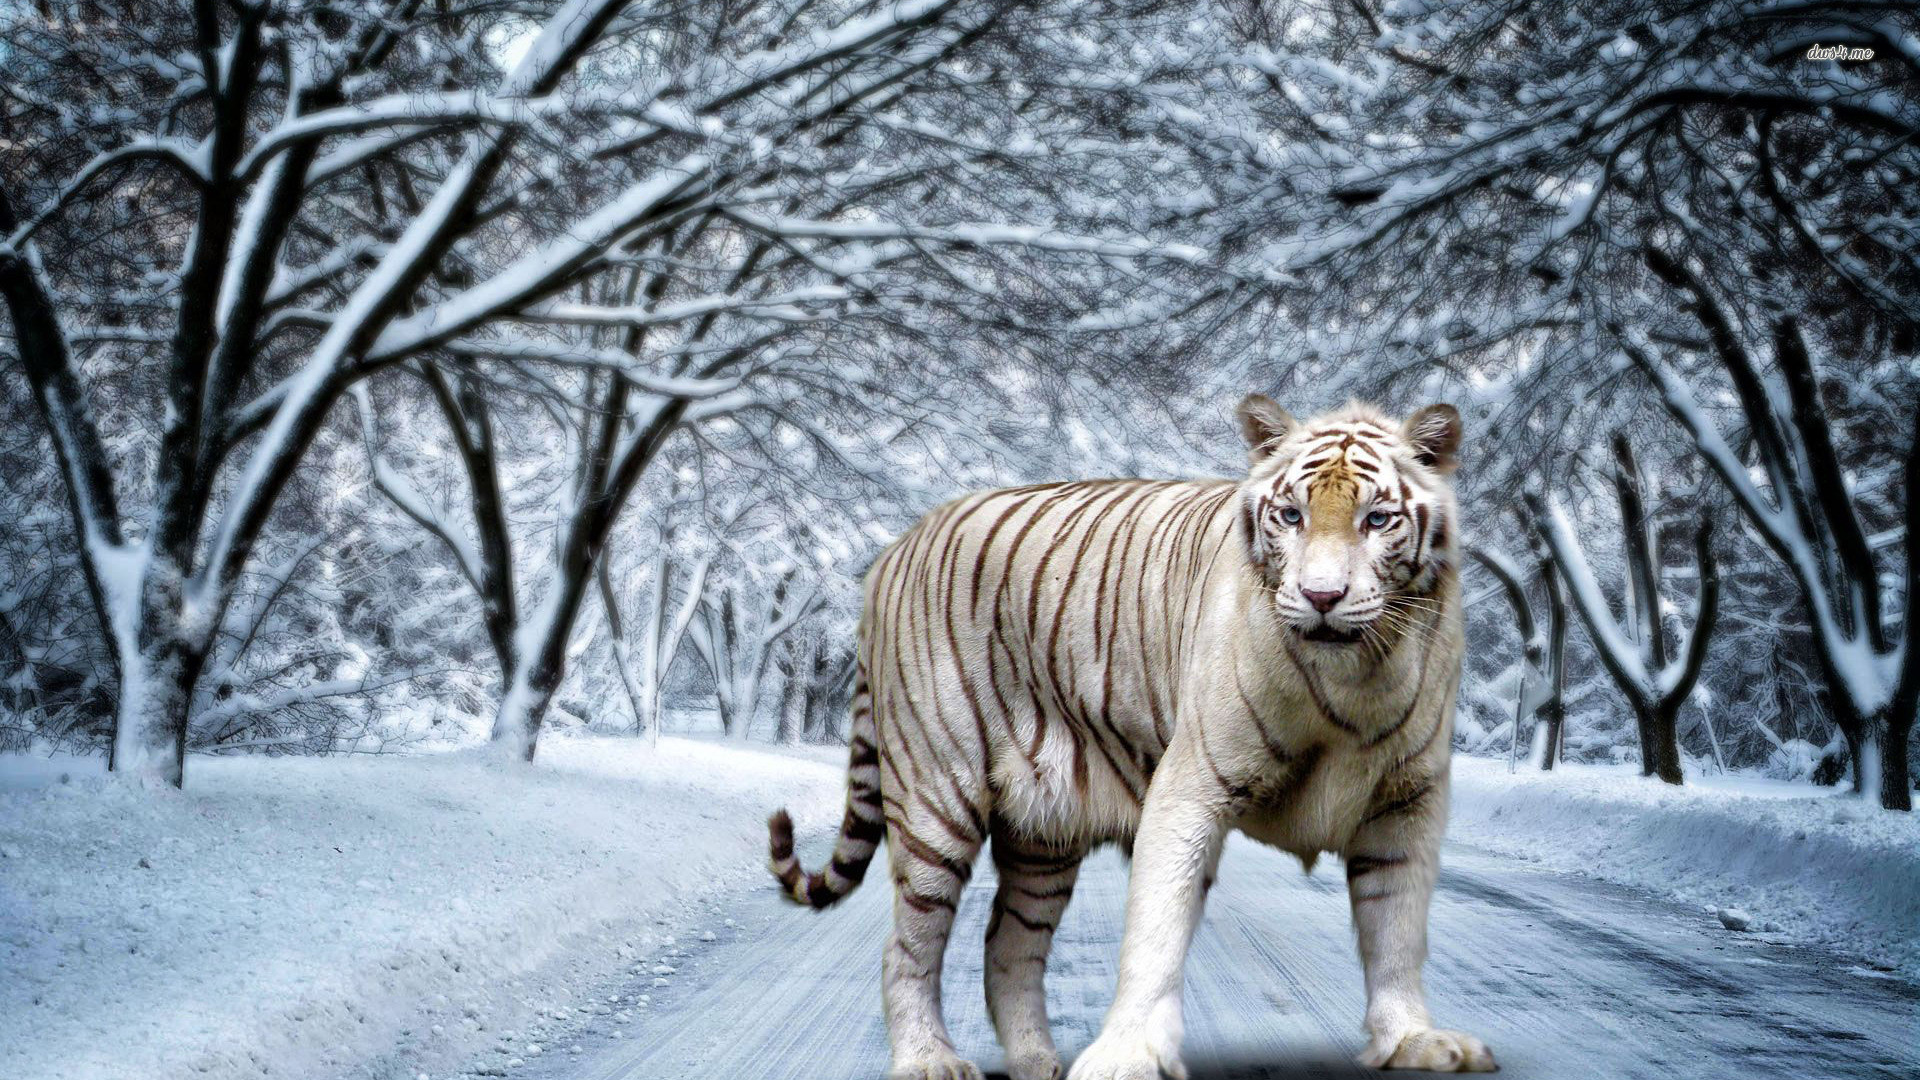 1920x1080 In Gallery Tiger Wallpapers Tiger HD Wallpapers Backgrounds